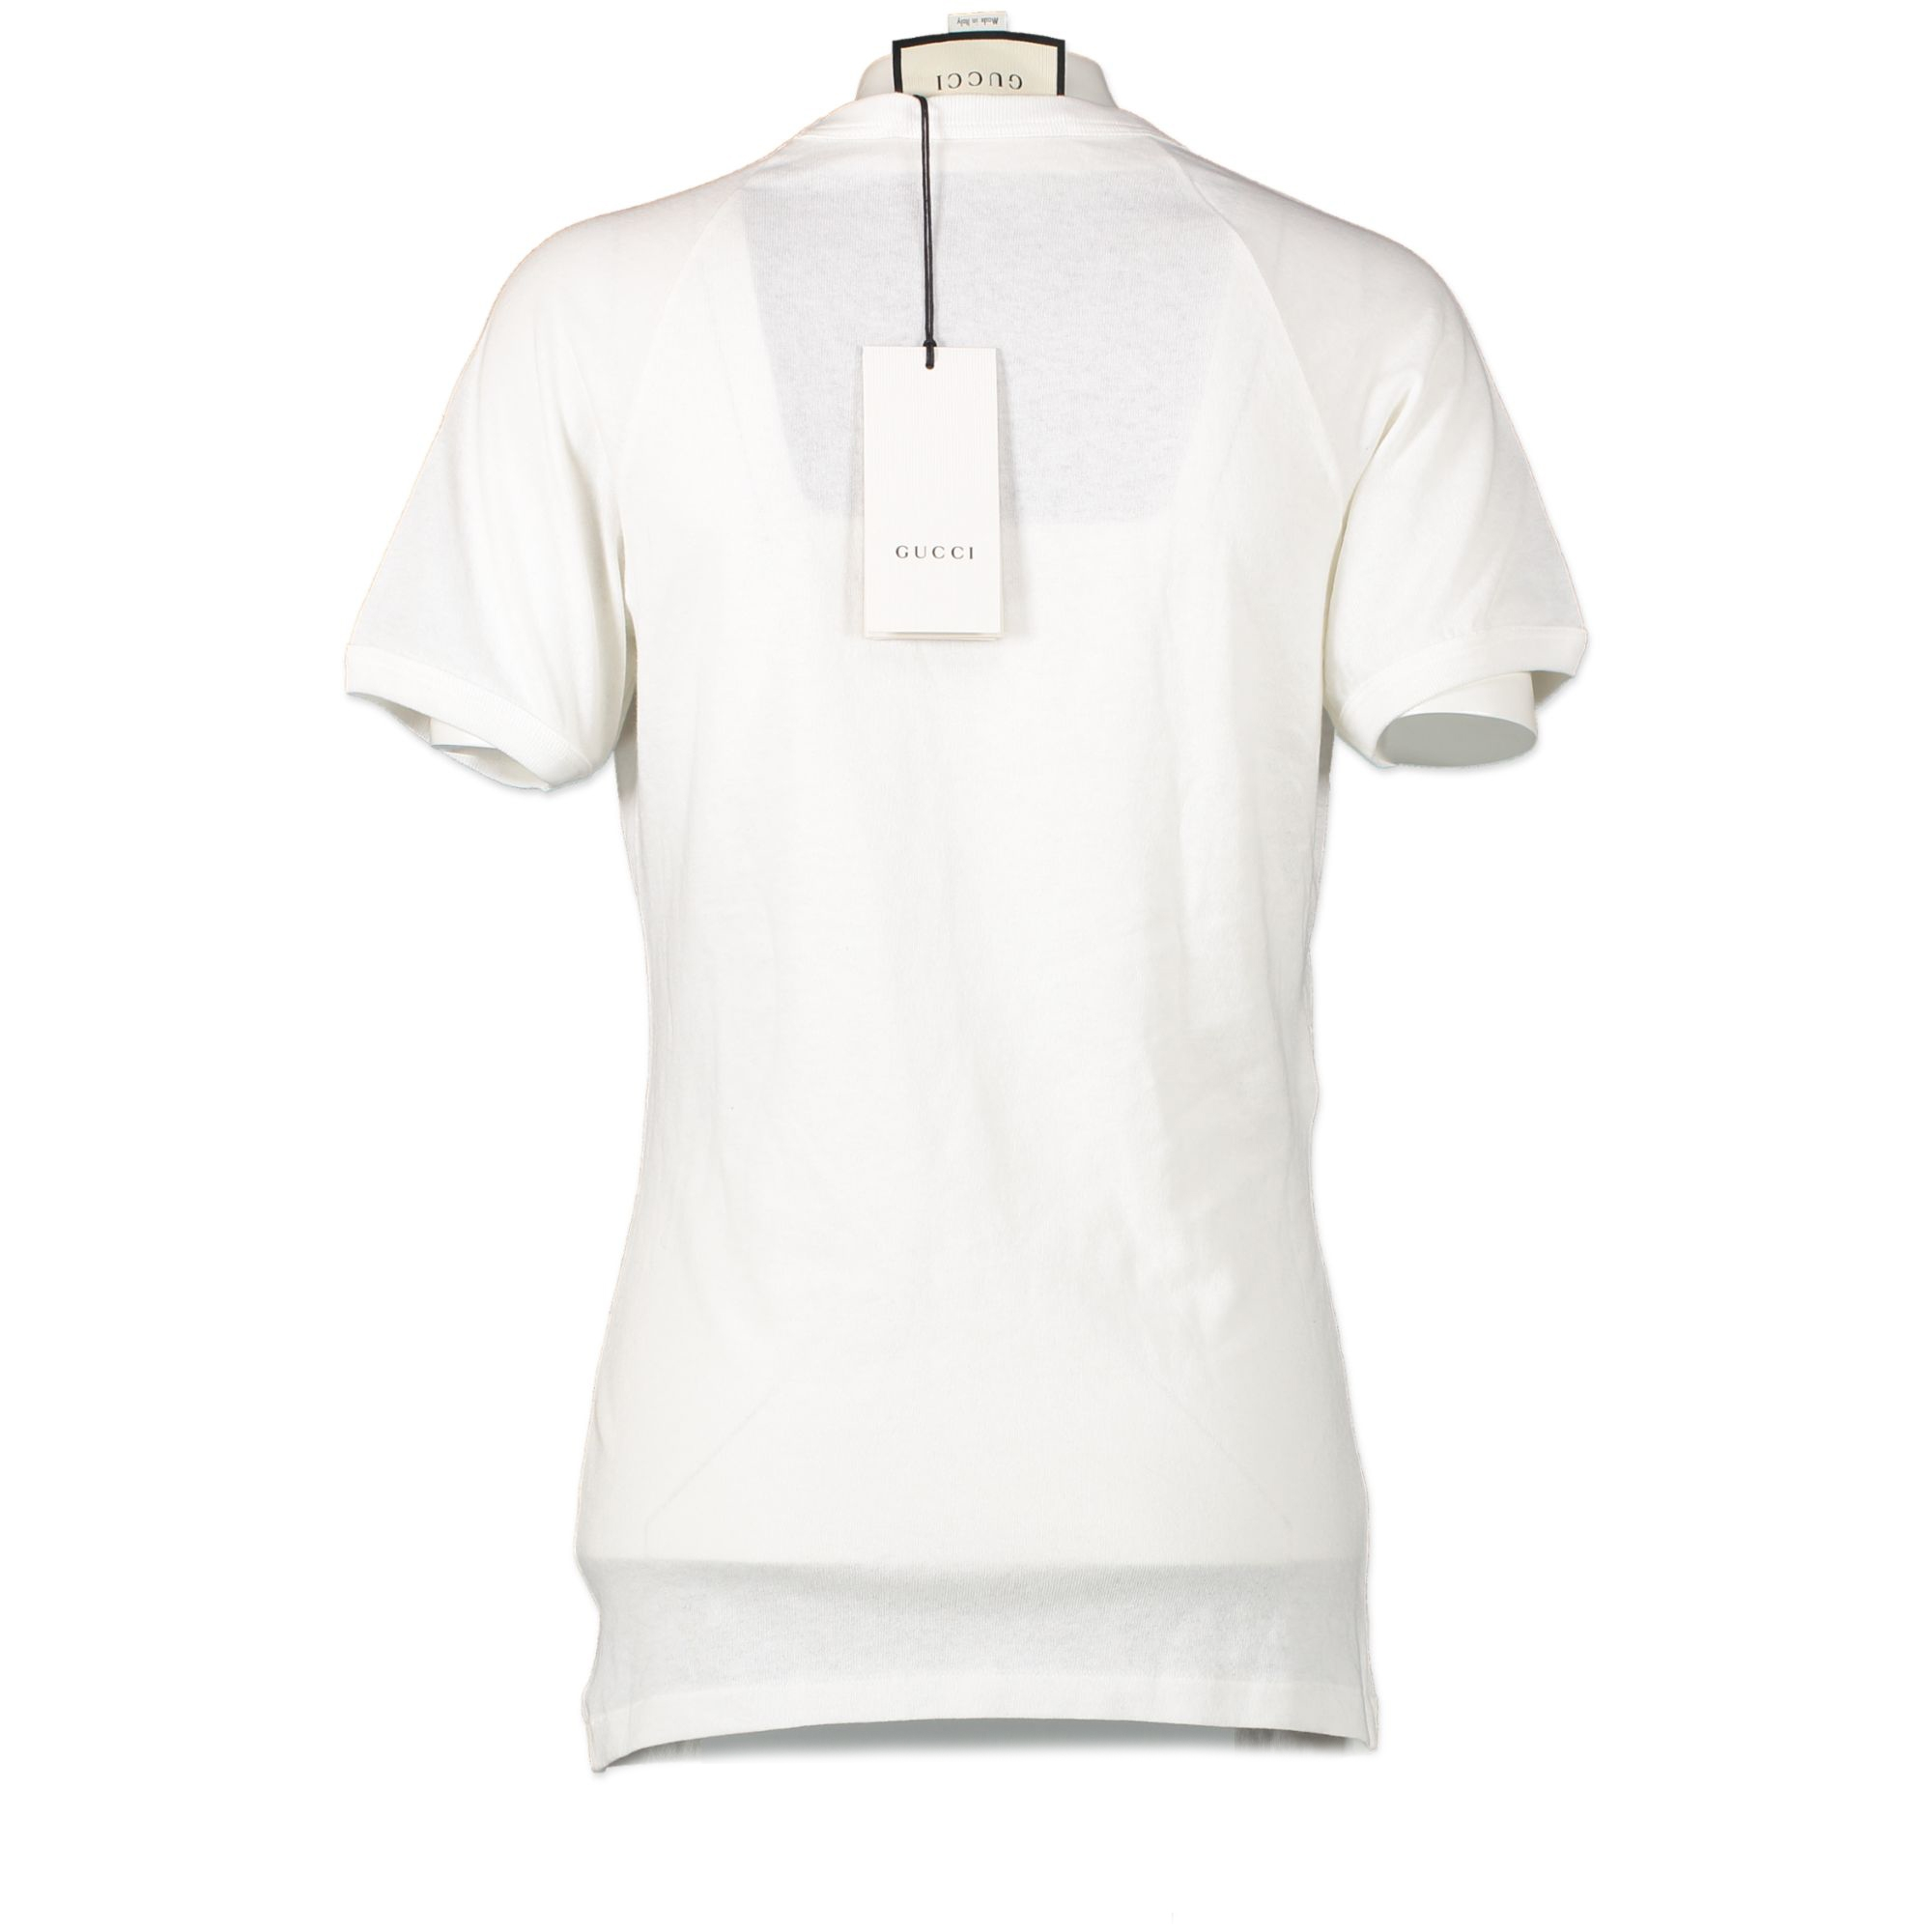 Are you looking for an authentic Gucci White Strawberry Sequin T-Shirt